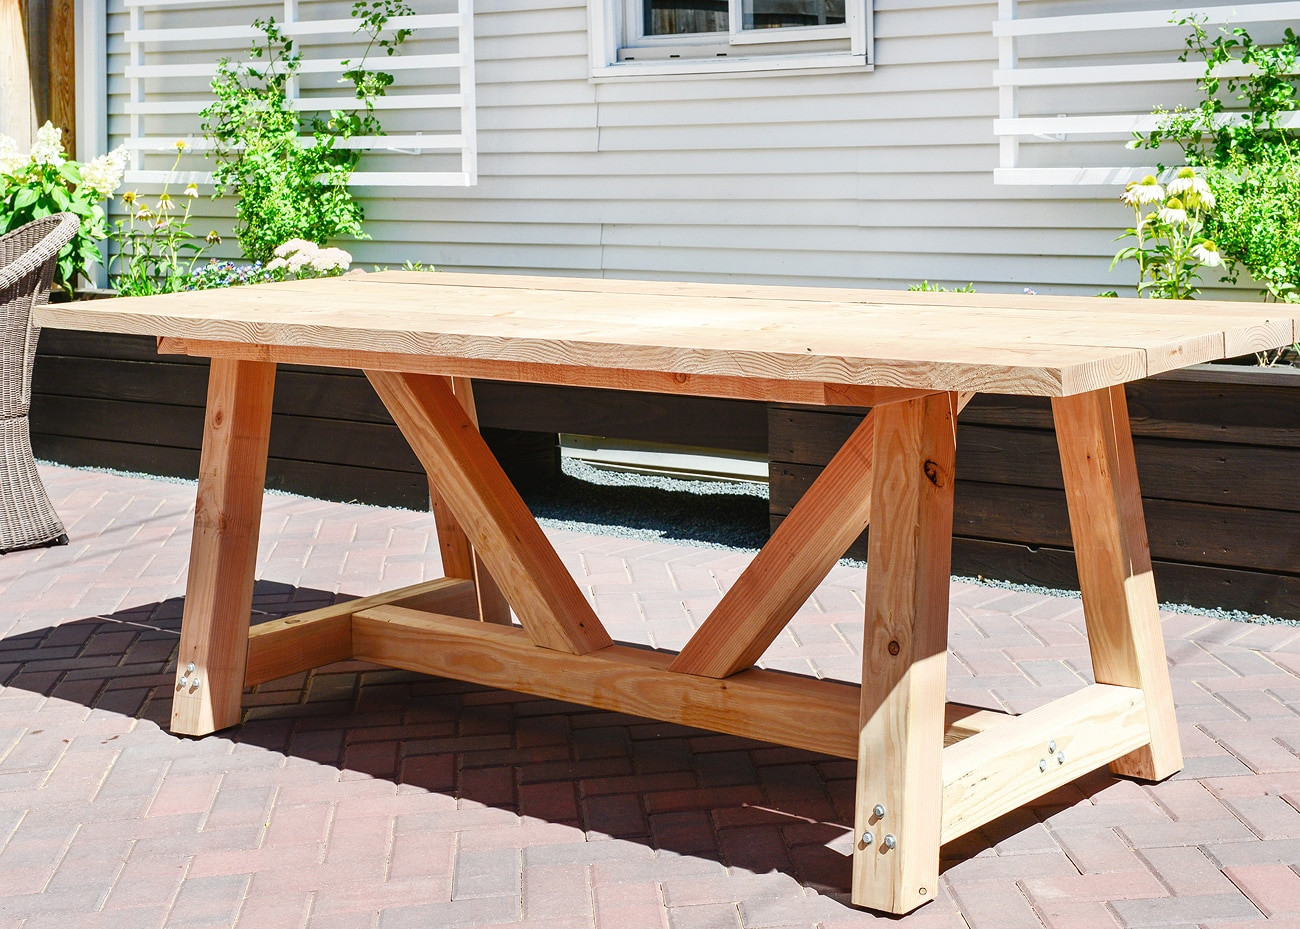 DIY Outdoor Wooden Table  Our DIY Patio Table Part I Yellow Brick Home